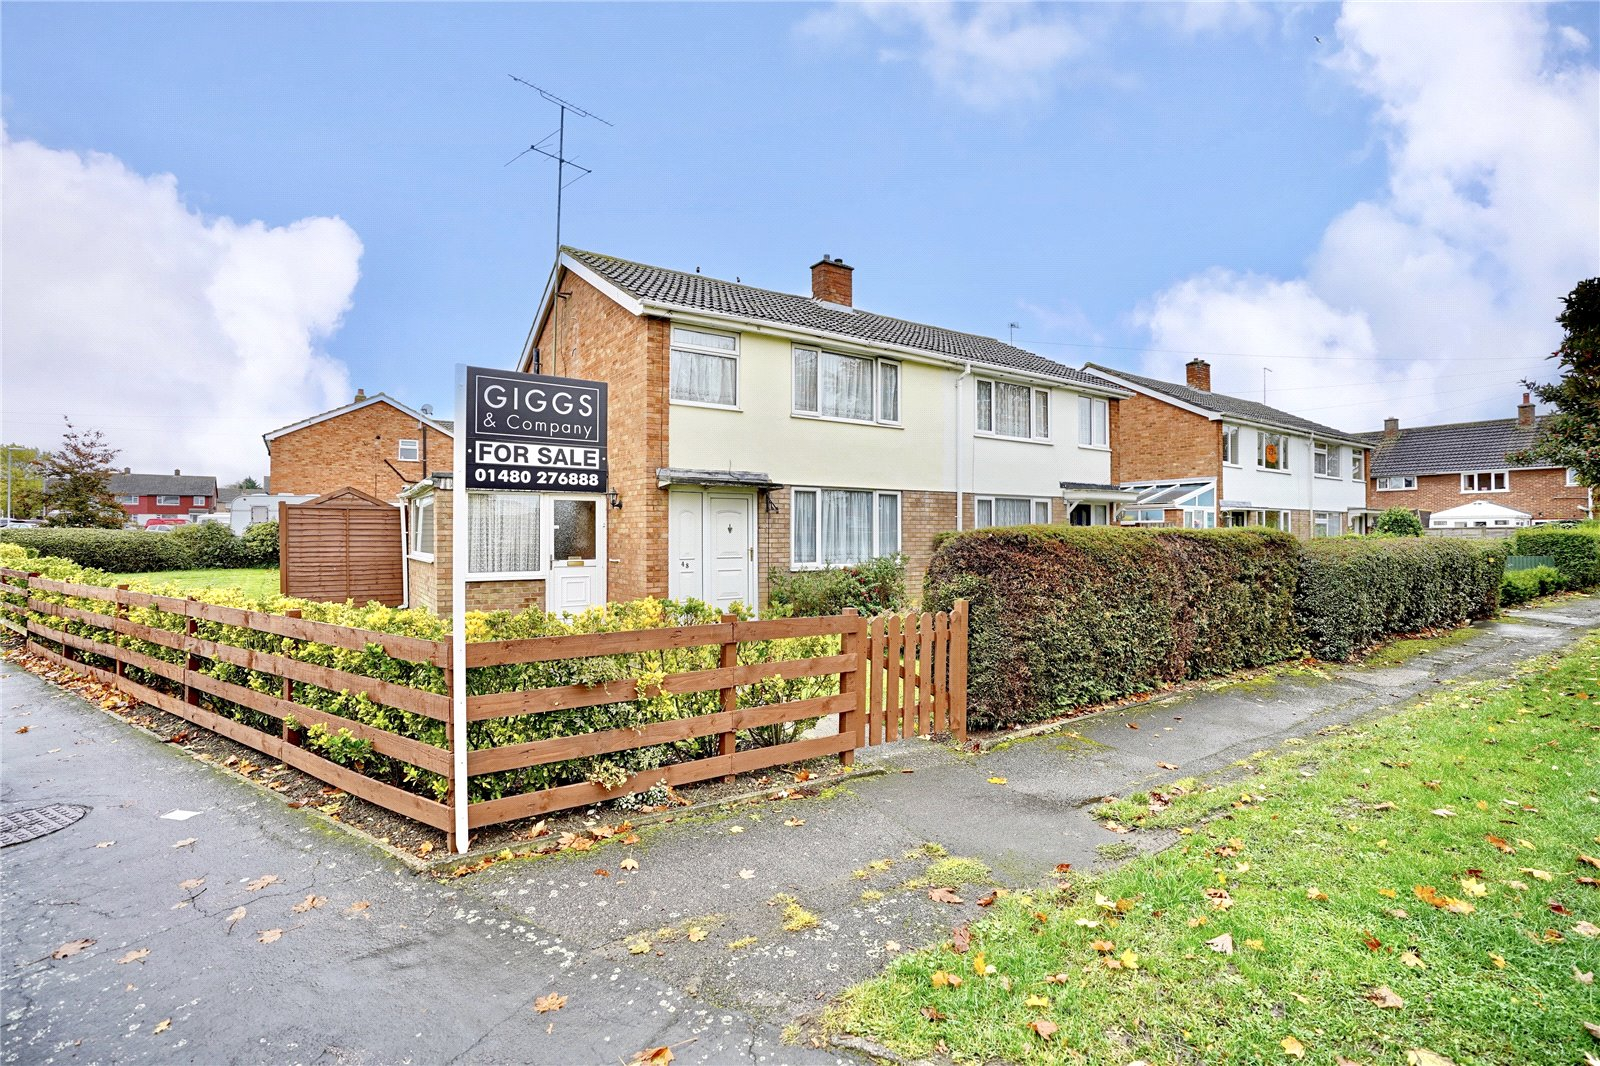 3 bed house for sale in Princes Drive, St. Neots, PE19